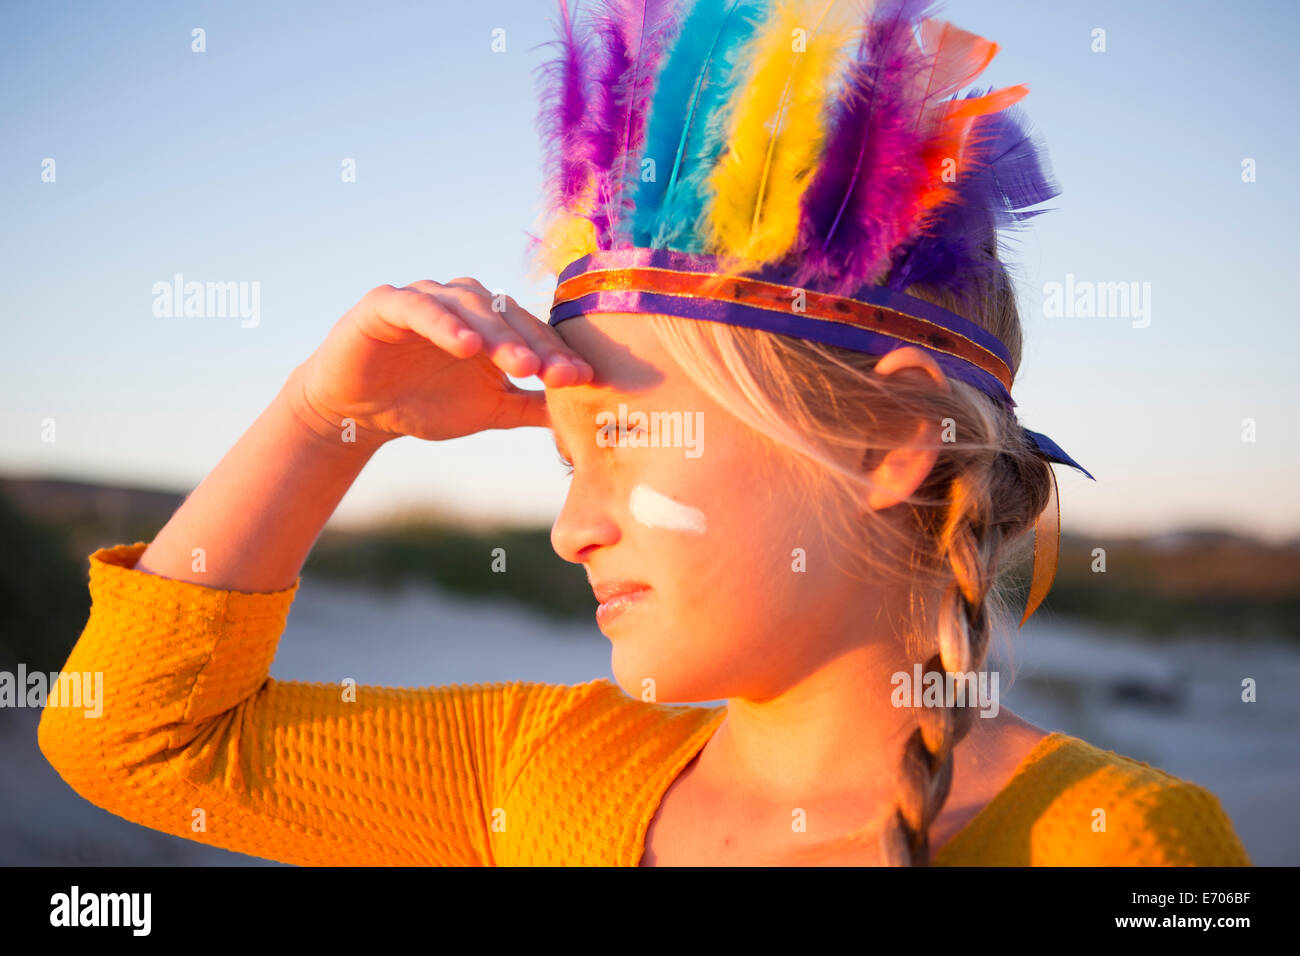 Close up of girl dressed as native american in feather headdress with hand shading eyes - Stock Image